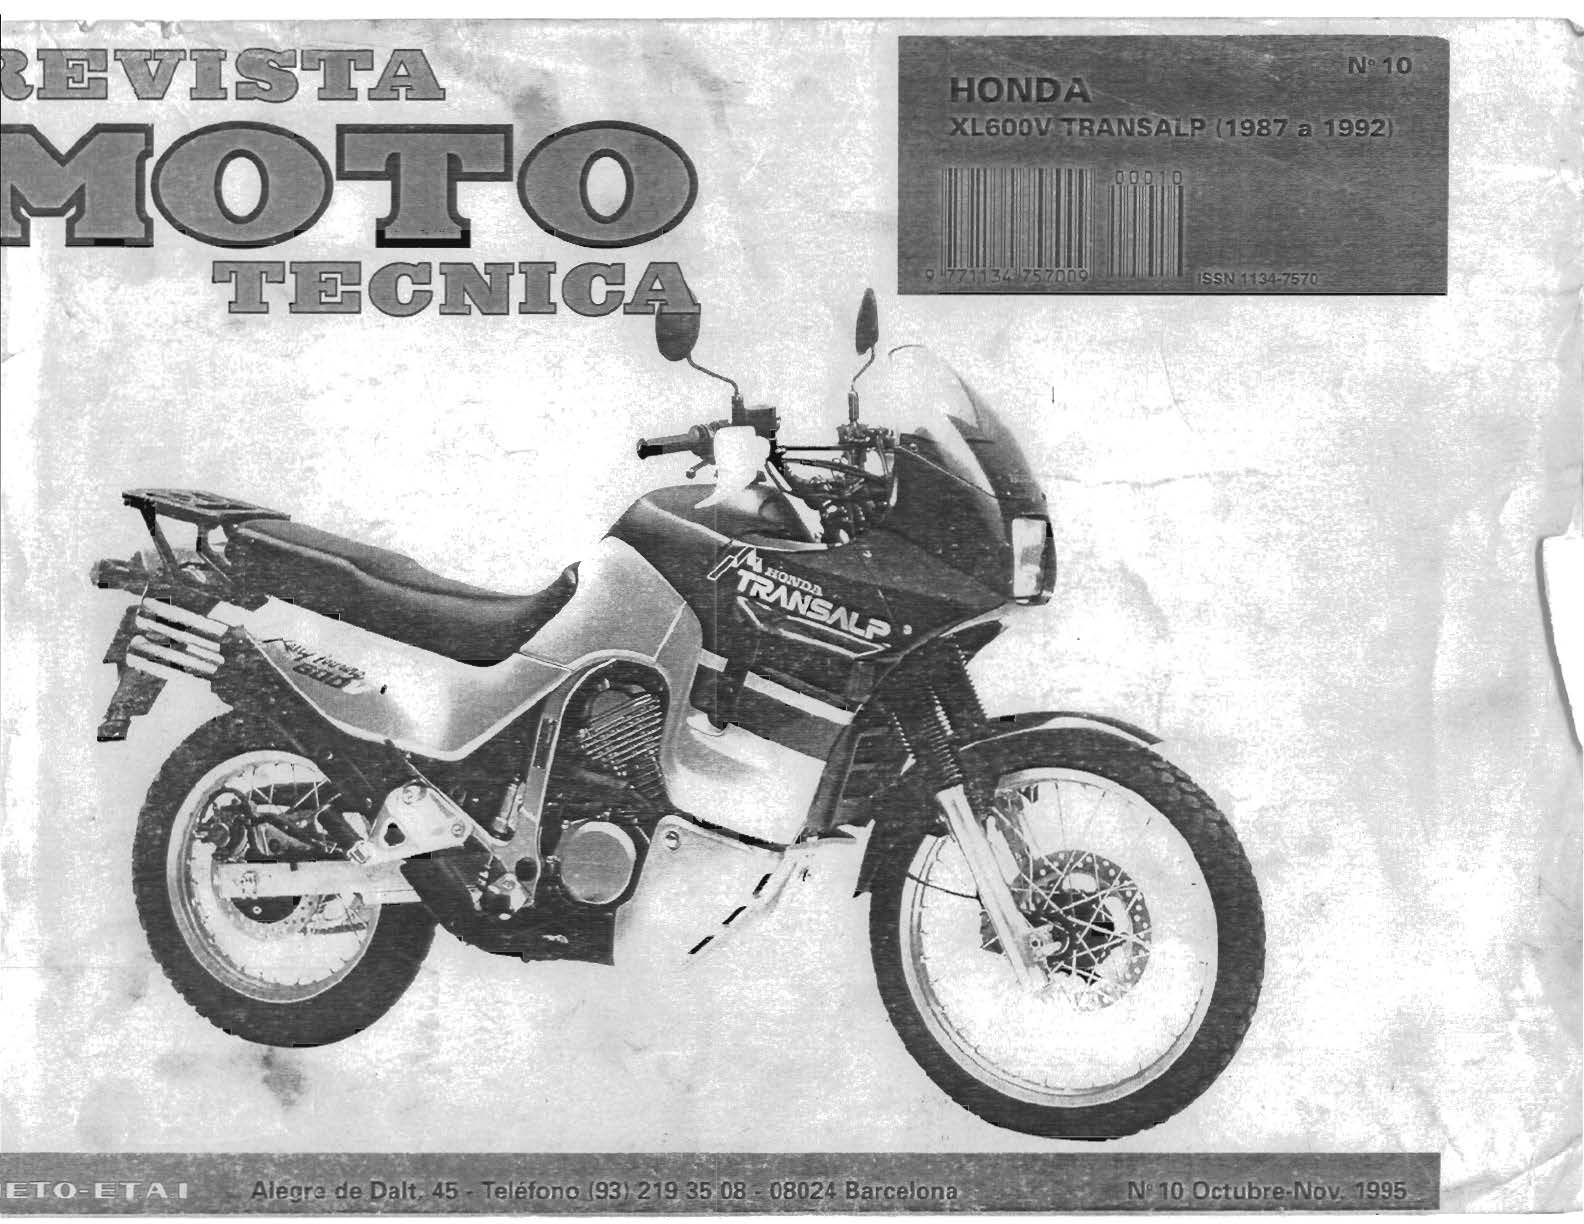 Workshop manual for Honda XL600V (1987-1992) (Spanish)